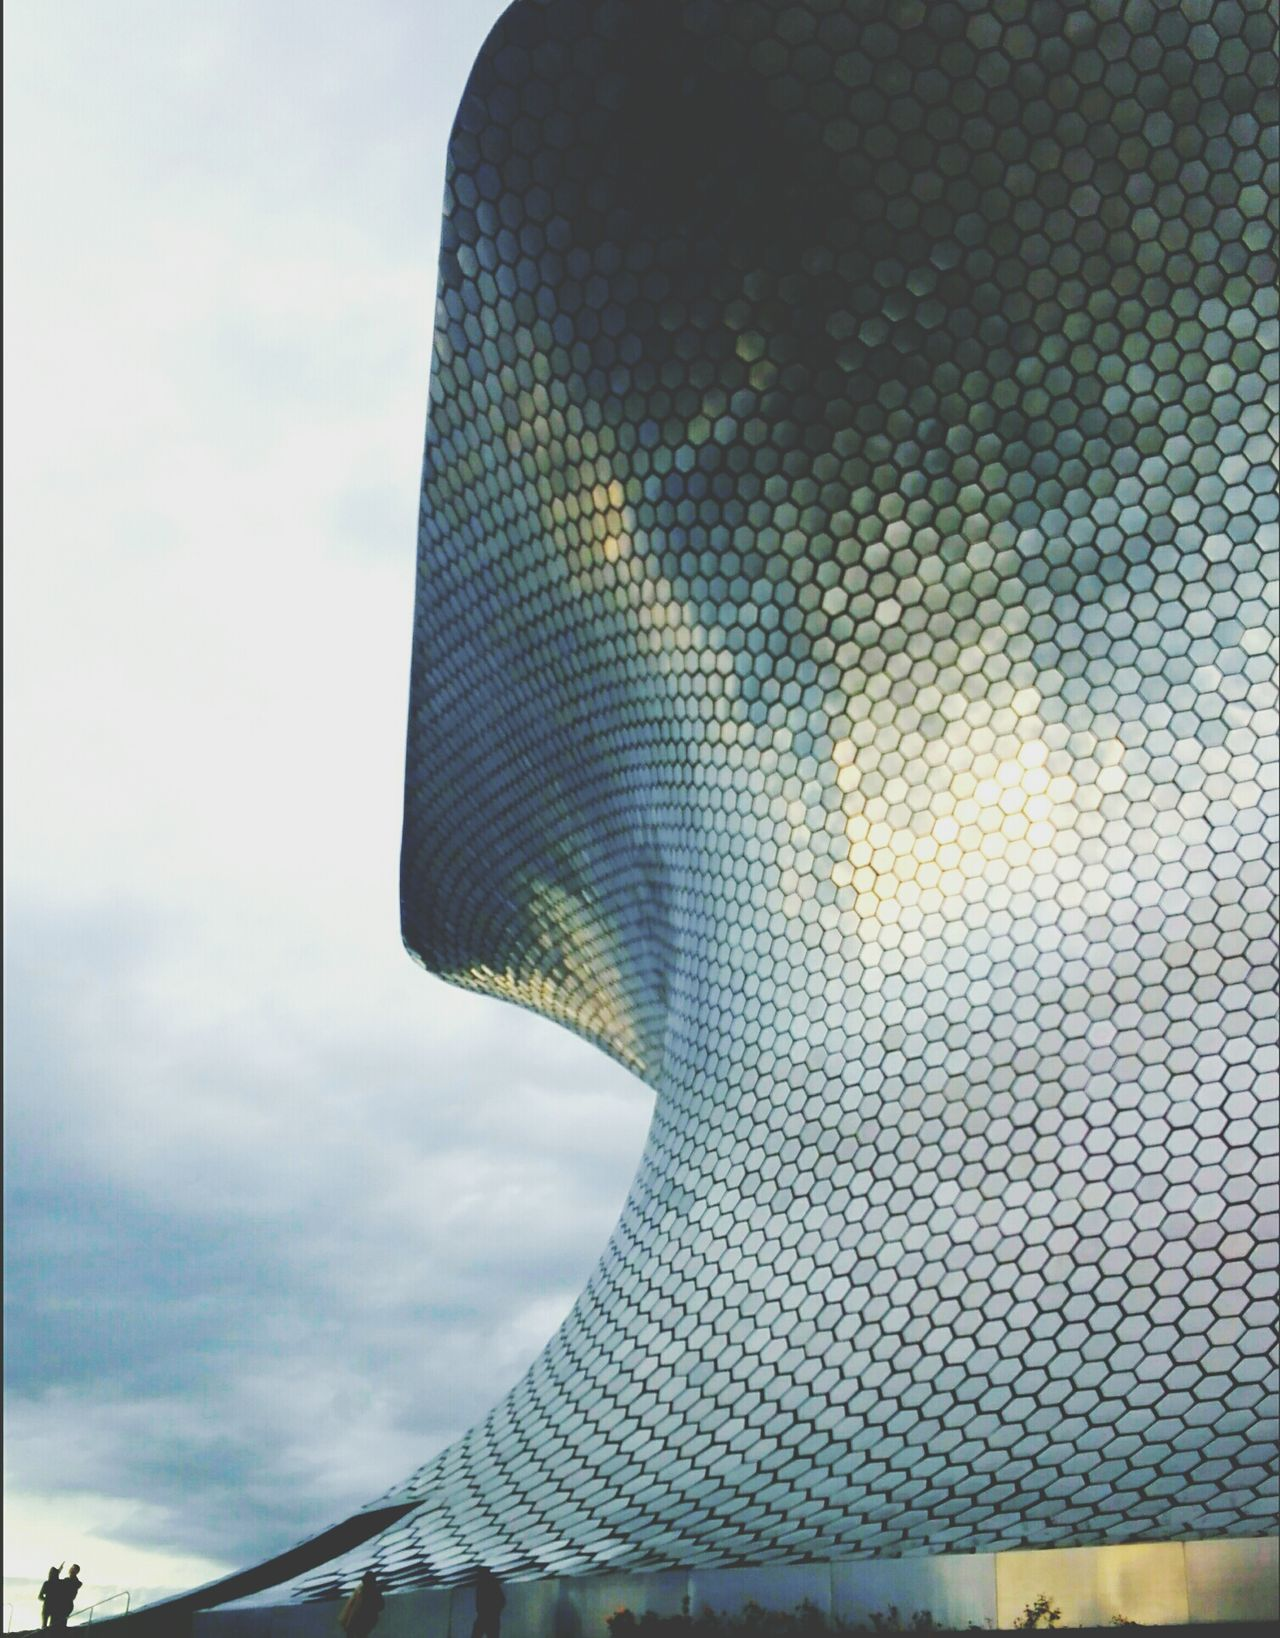 Museosoumaya Architecture Modern Building Exterior City Day Famous Place Mexico Ciudad De México Mexico CityCulture Conocemexico Tourist Polanco, CDMX Plazacarso Travel Awesome Arte MexicanGirl